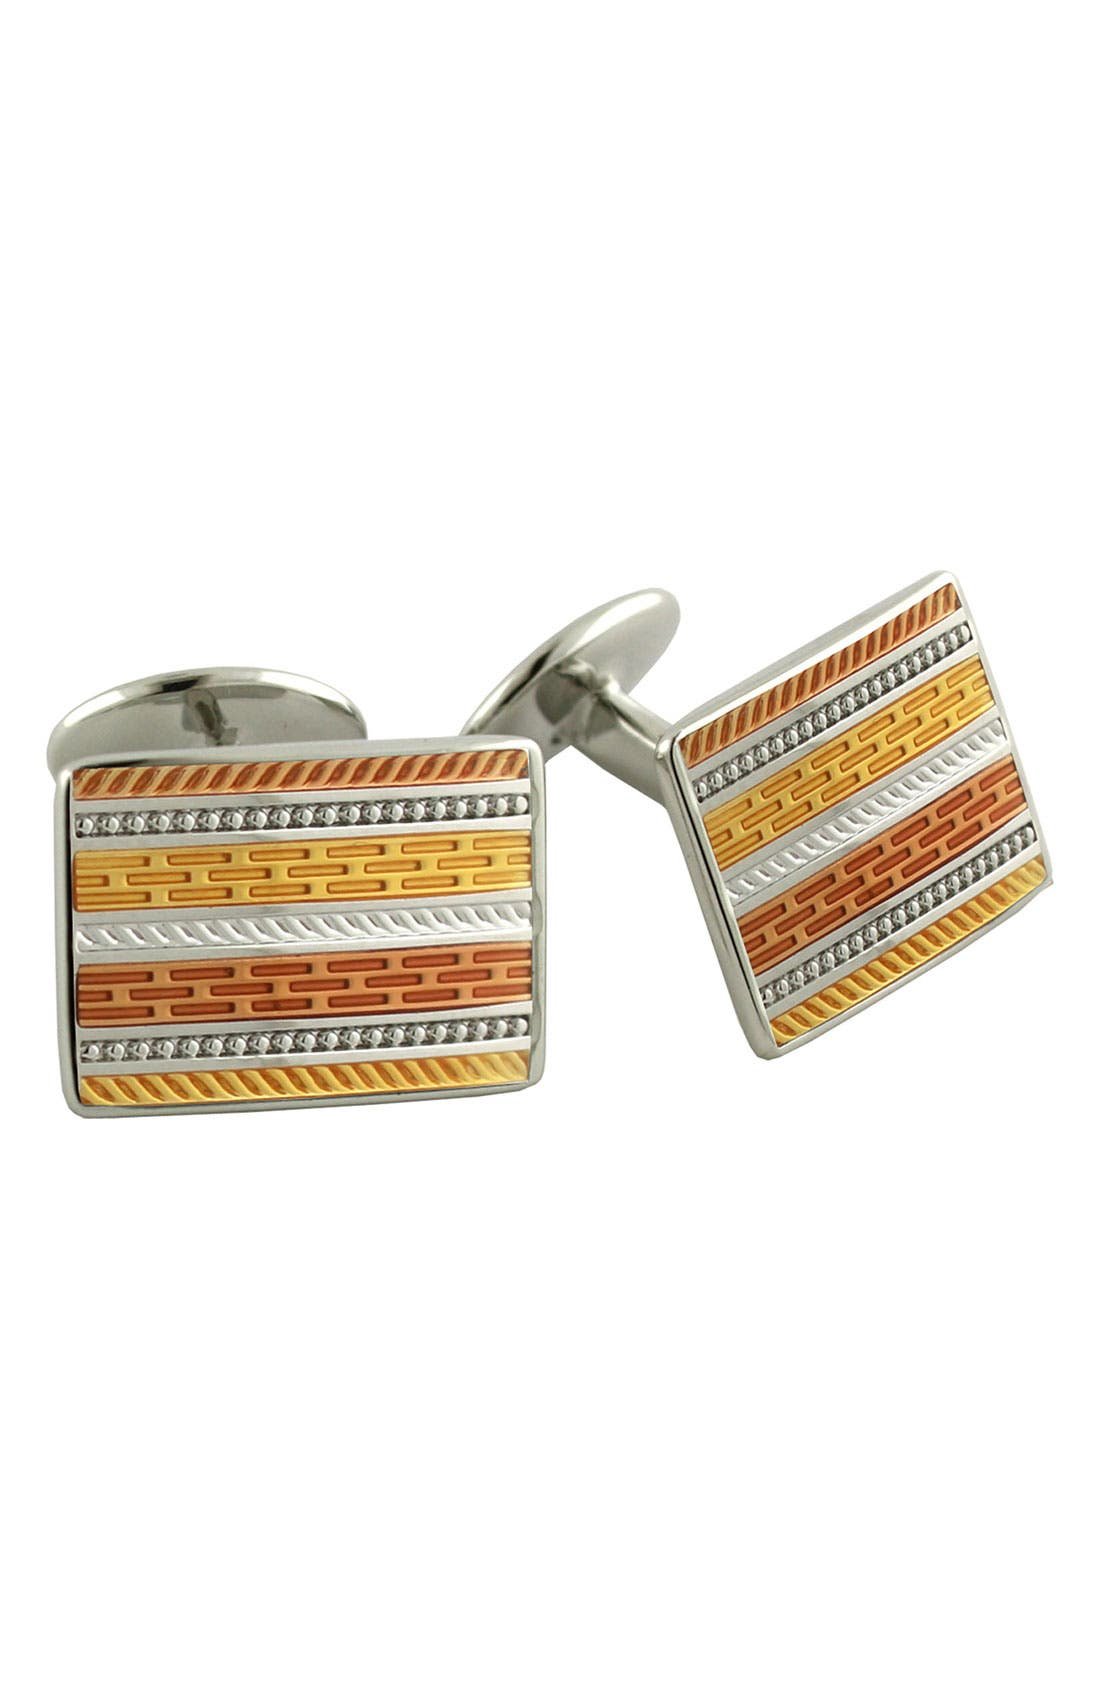 Main Image - David Donahue Rectangular Sterling Silver Cuff Links